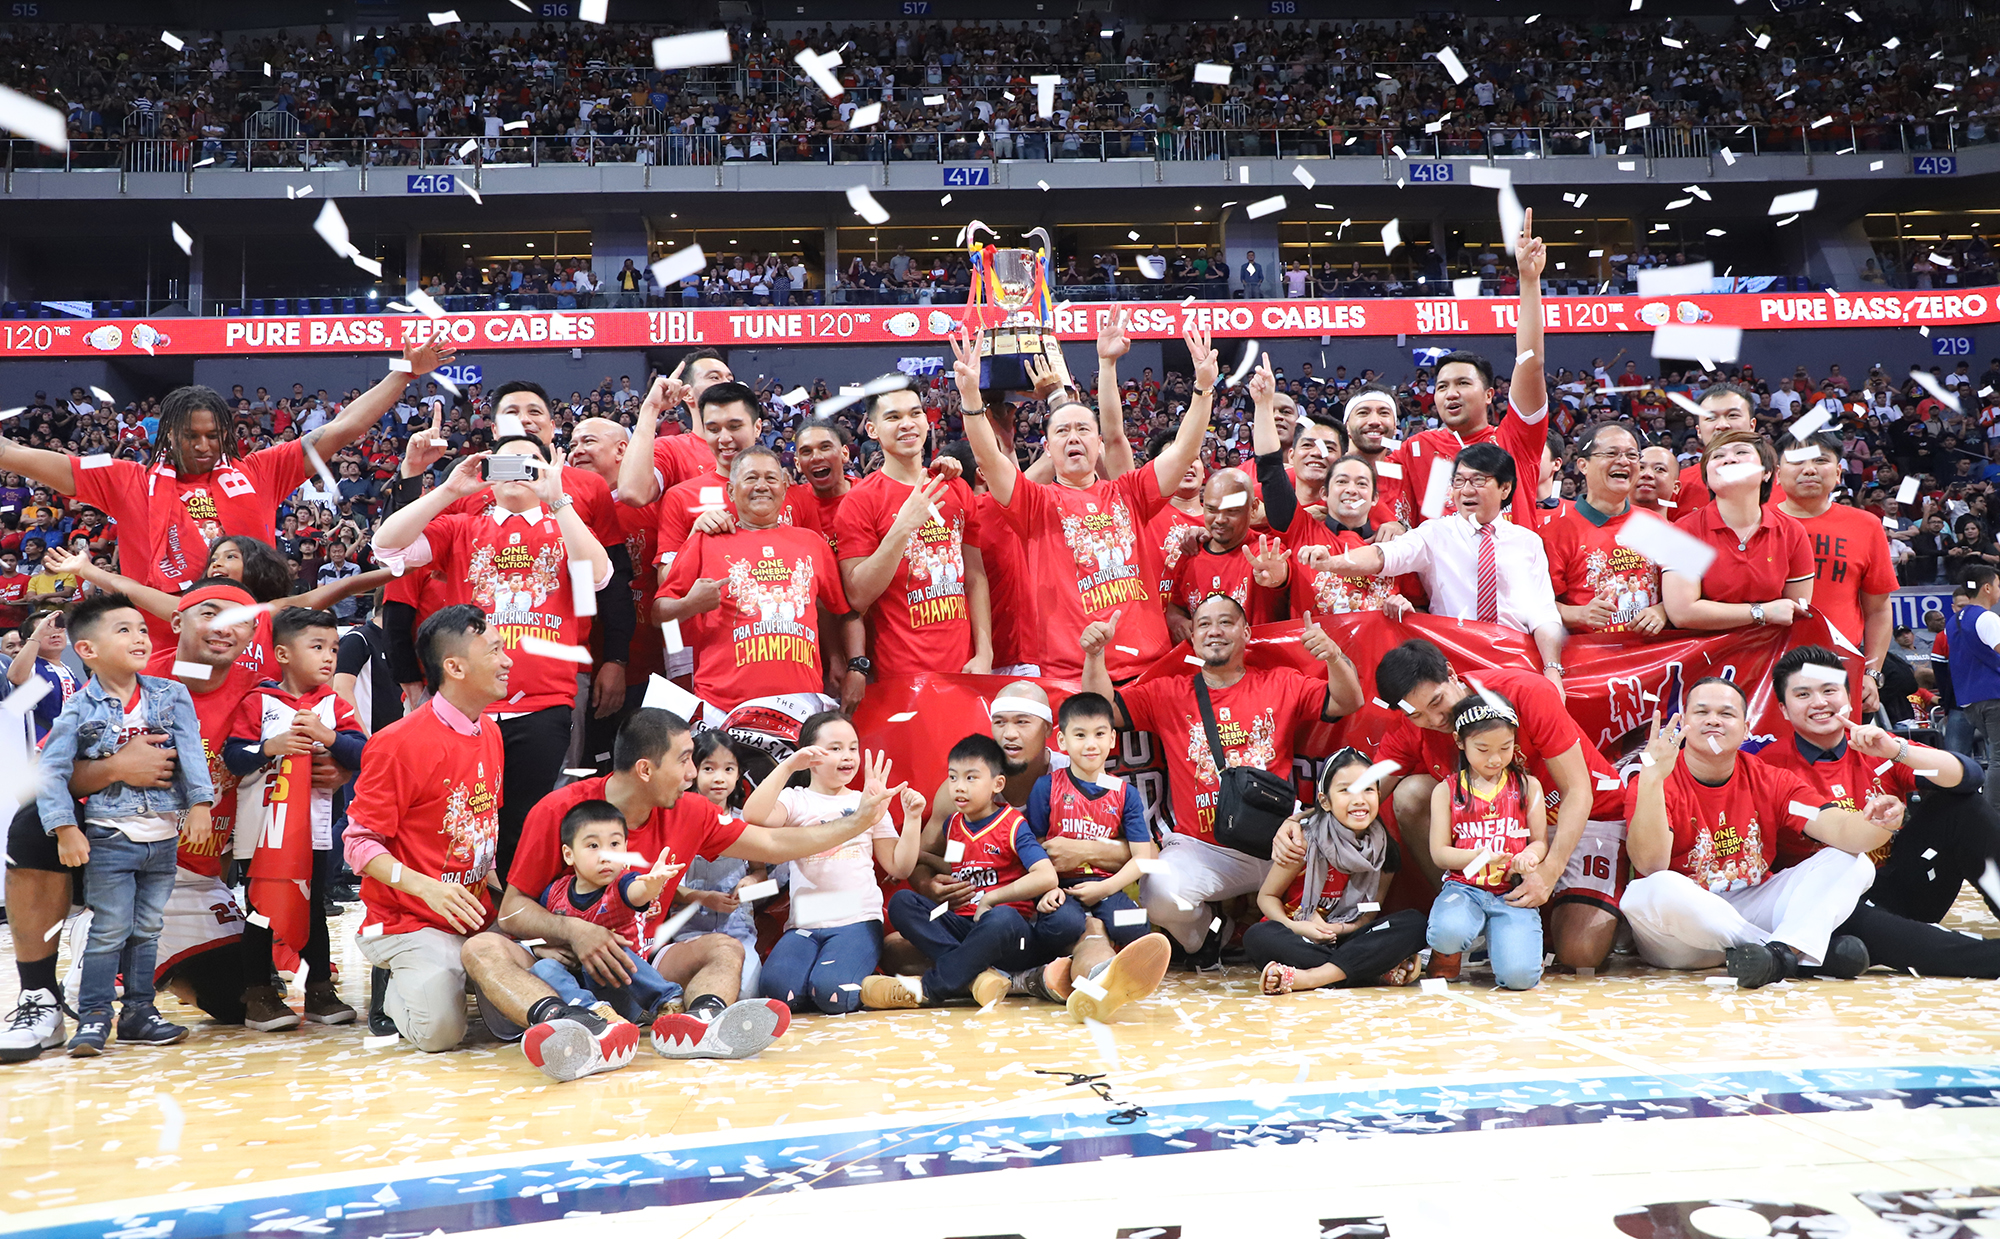 PBA: Ginebra finishes off Meralco to capture 3rd Govs Cup title